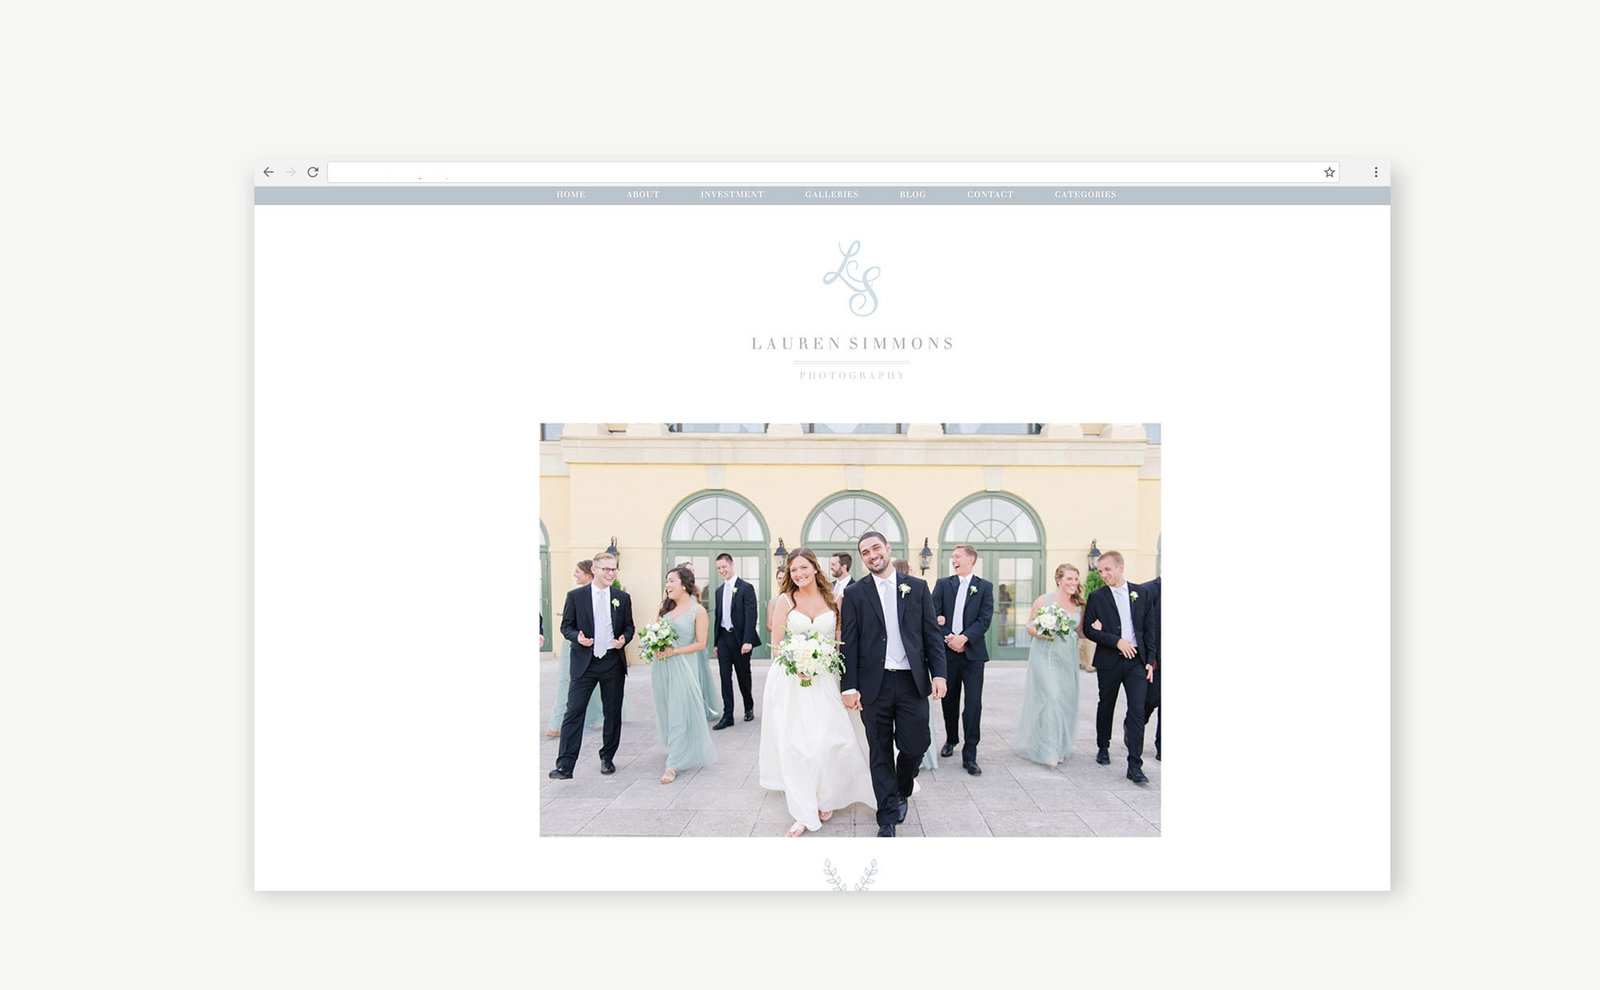 branding-for-photographers-web-design-lauren-simmons-01